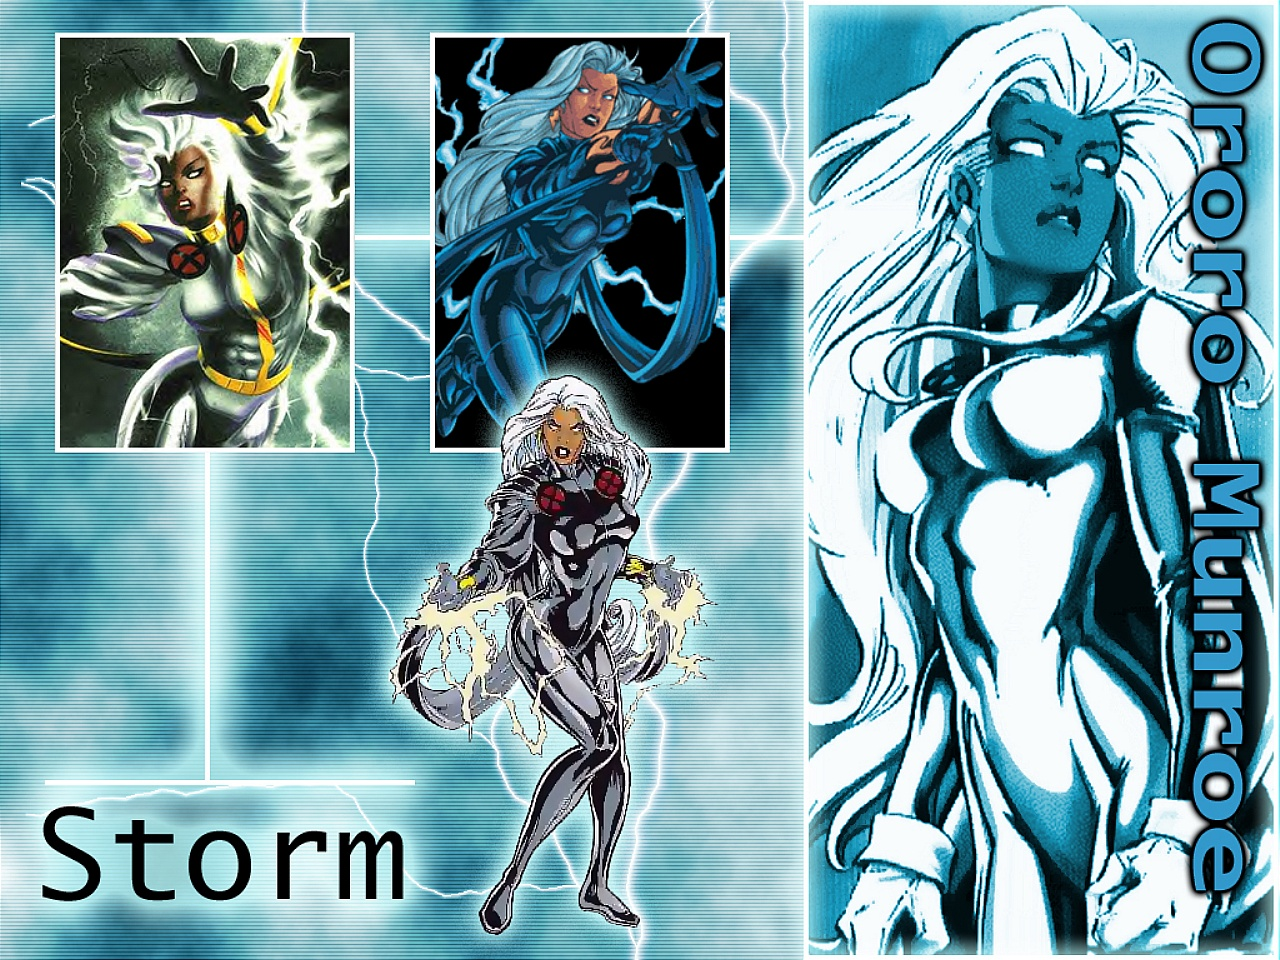 ororo storm wallpaper - photo #16